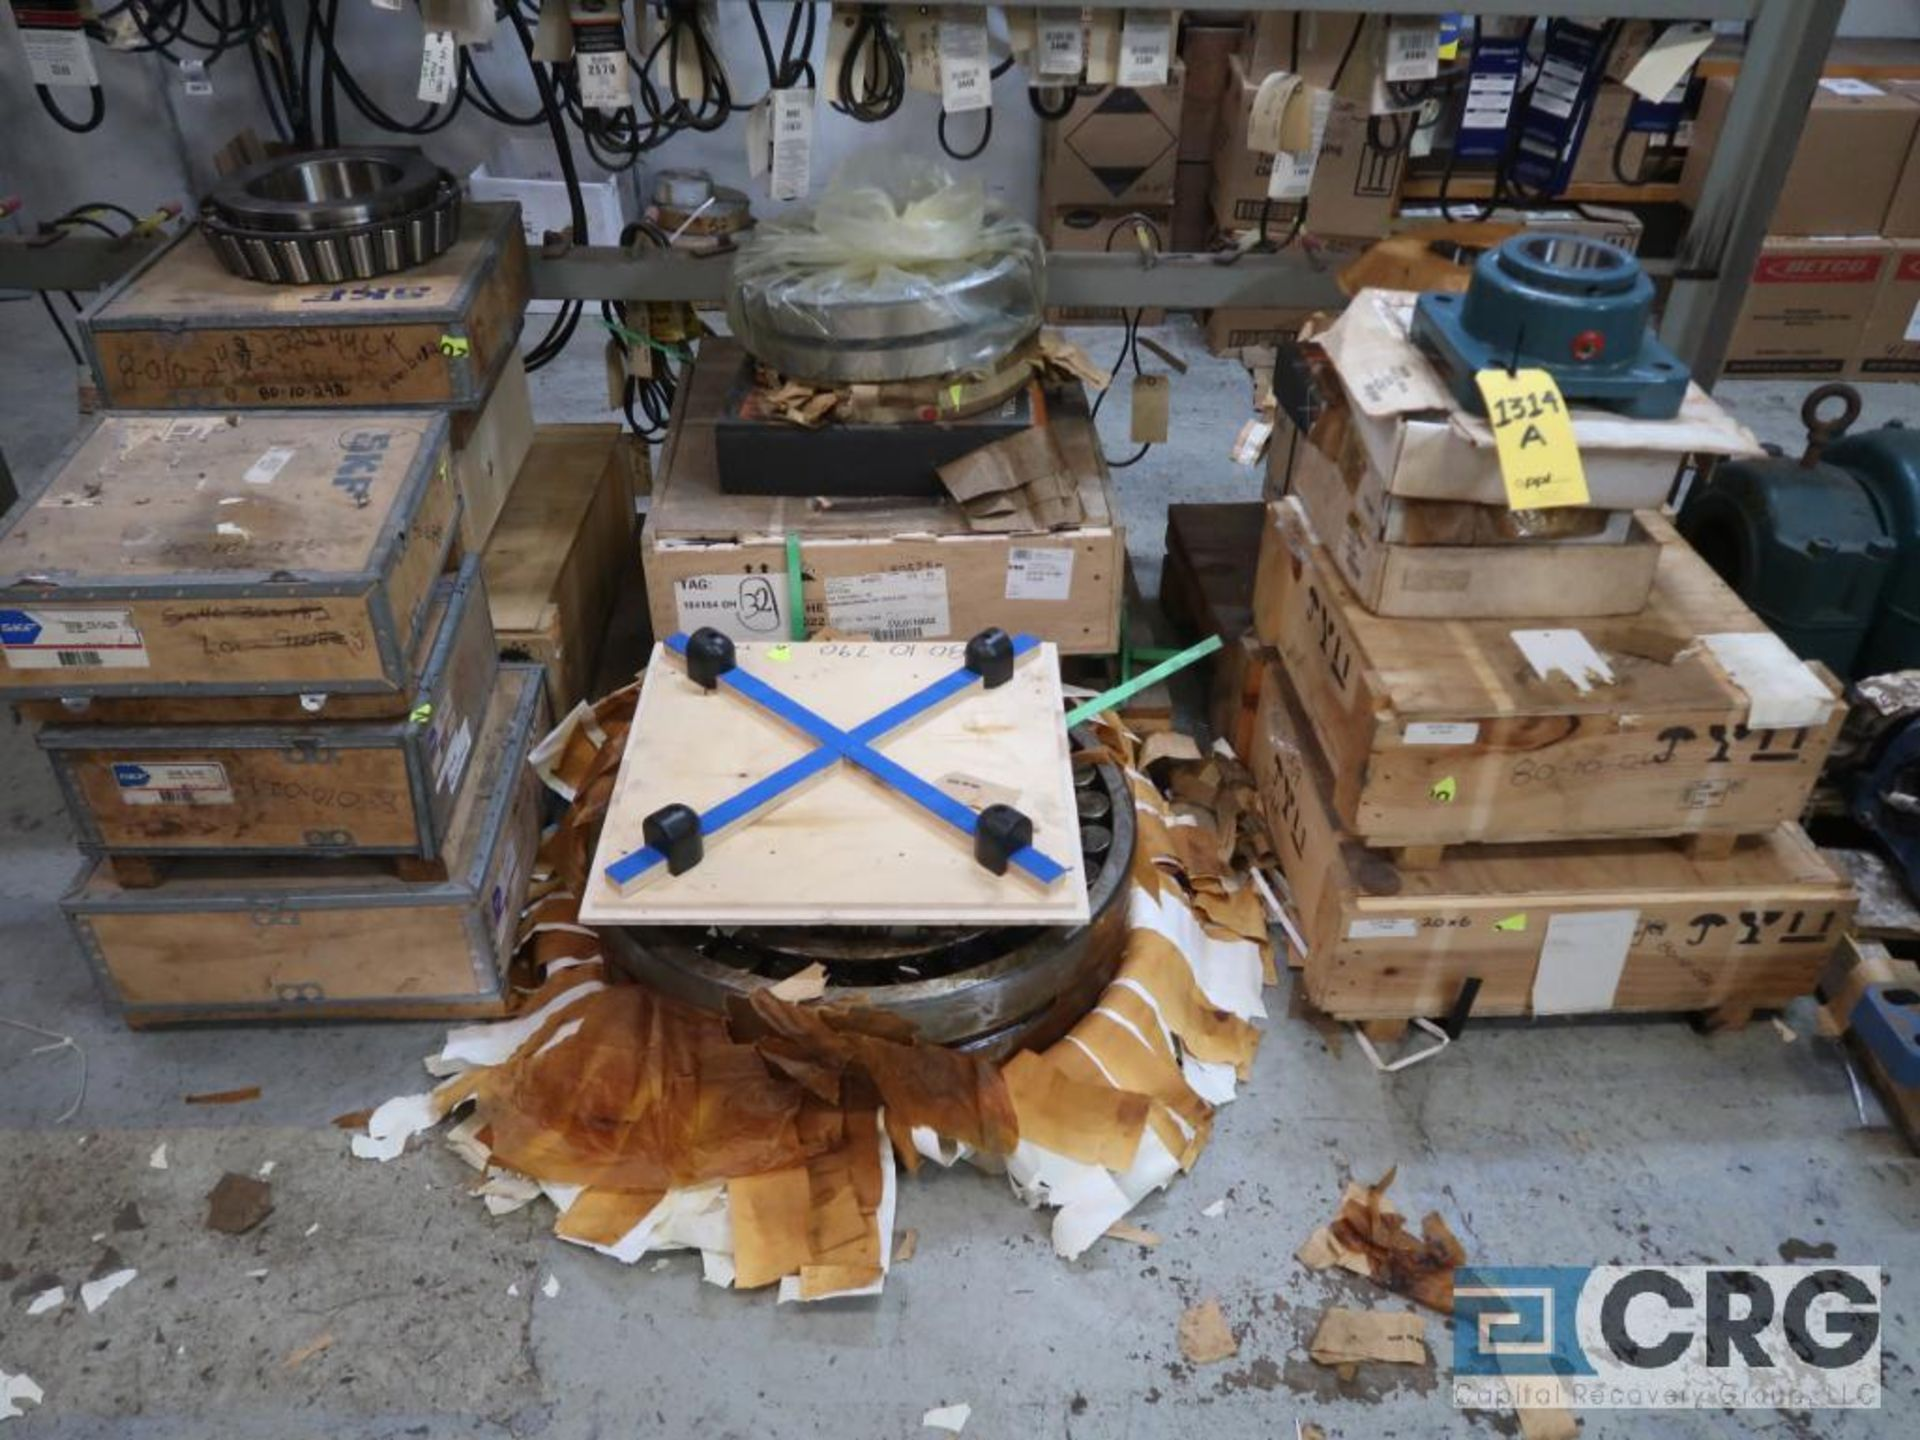 Lot of assorted large bearings and pillow blocks on (6) pallets (Basement Store) - Image 8 of 8